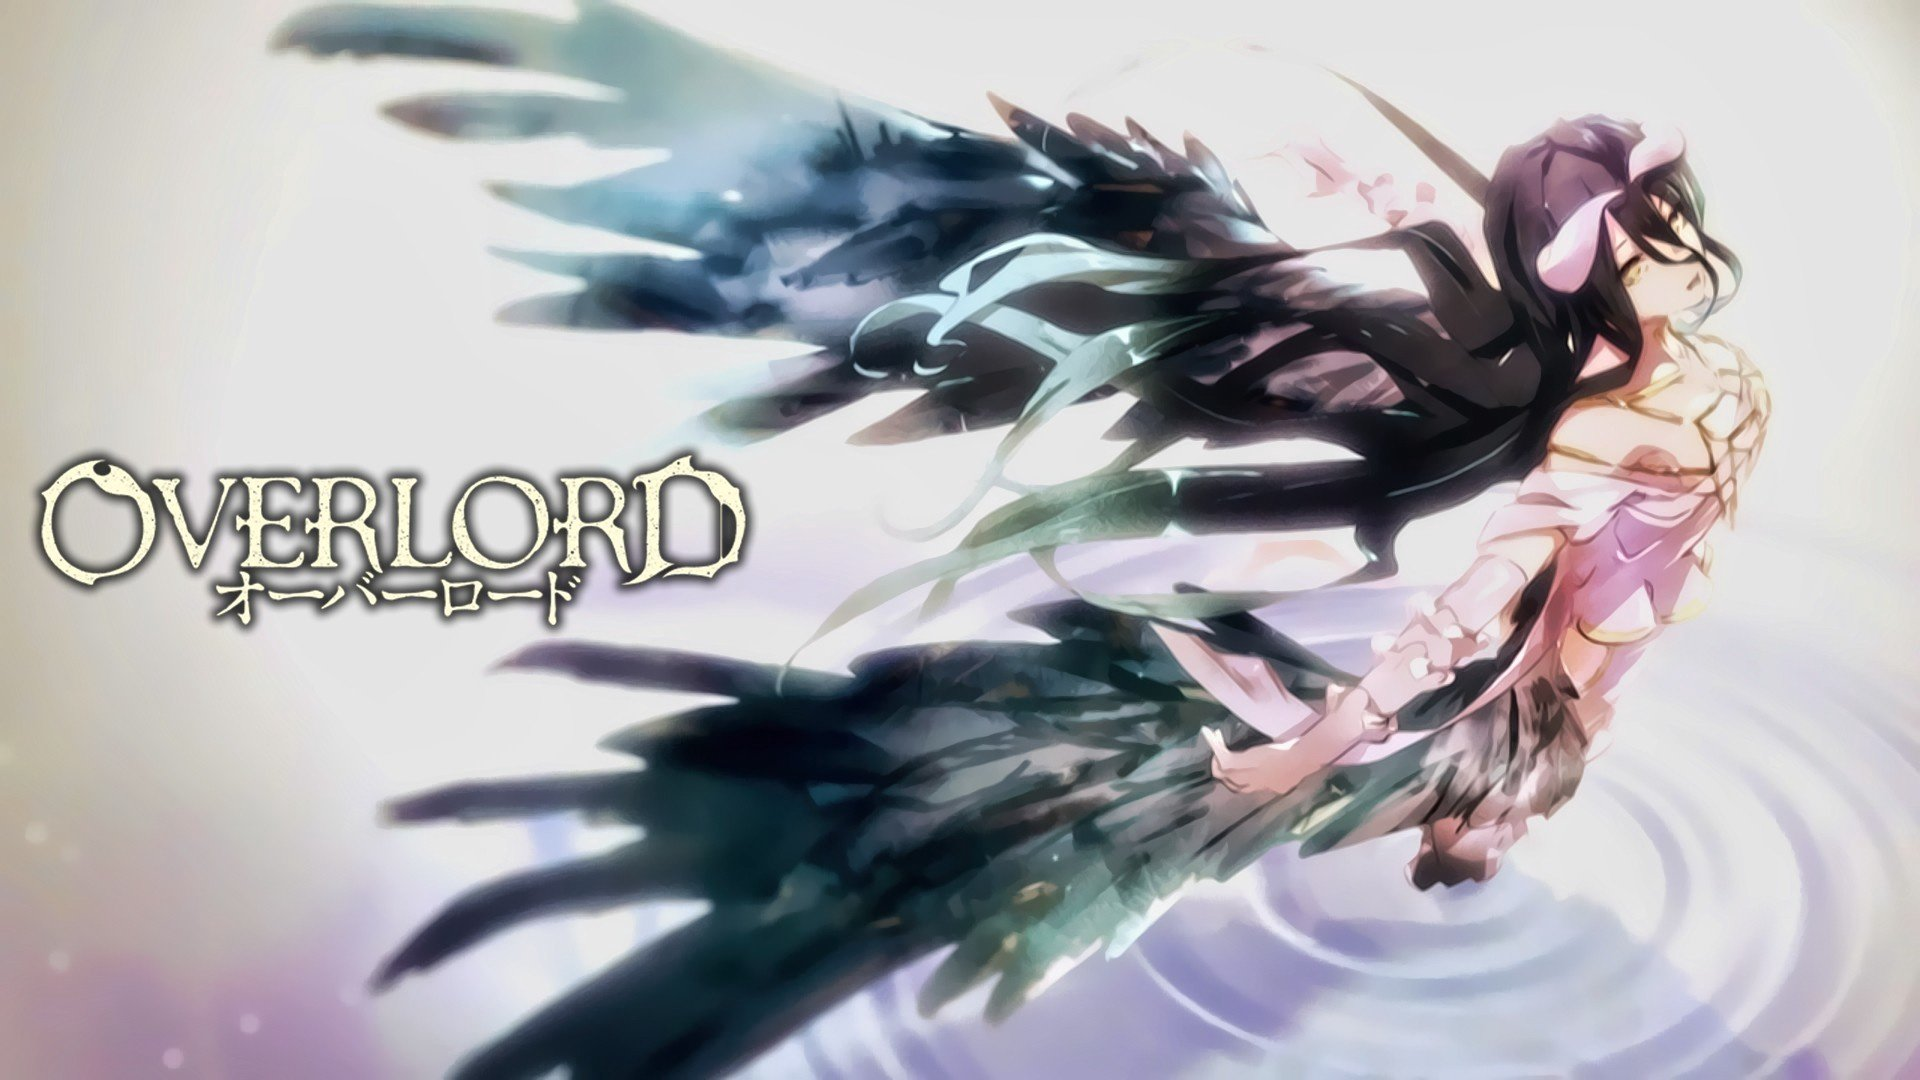 High resolution Albedo (Overlord) hd 1920x1080 background ID:275928 for PC